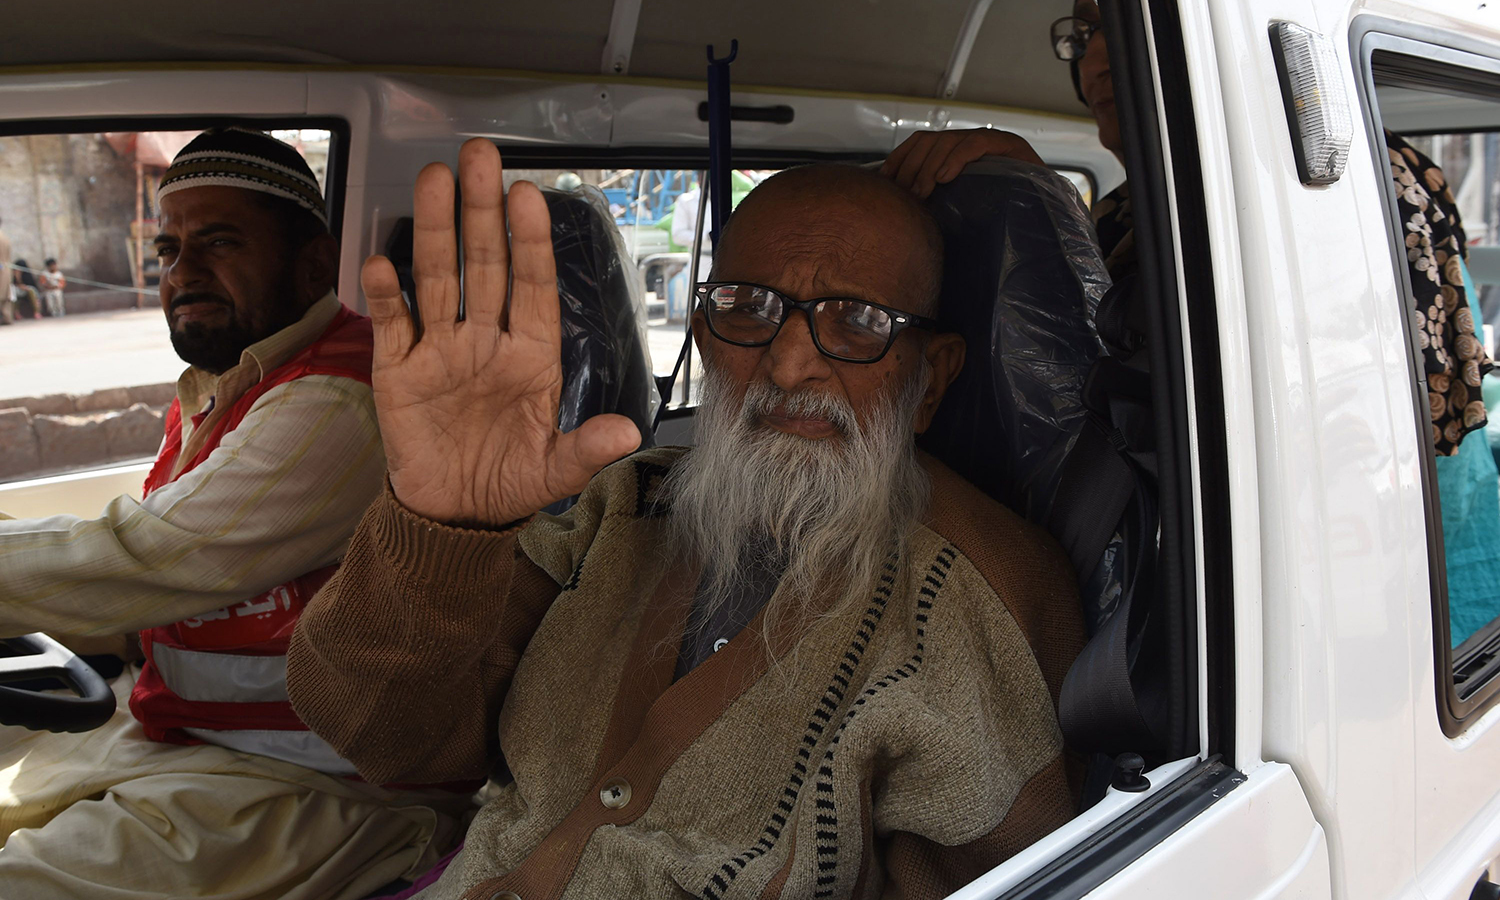 Abdul Sattar Edhi waves as he journeys to his office in Karachi. – AFP